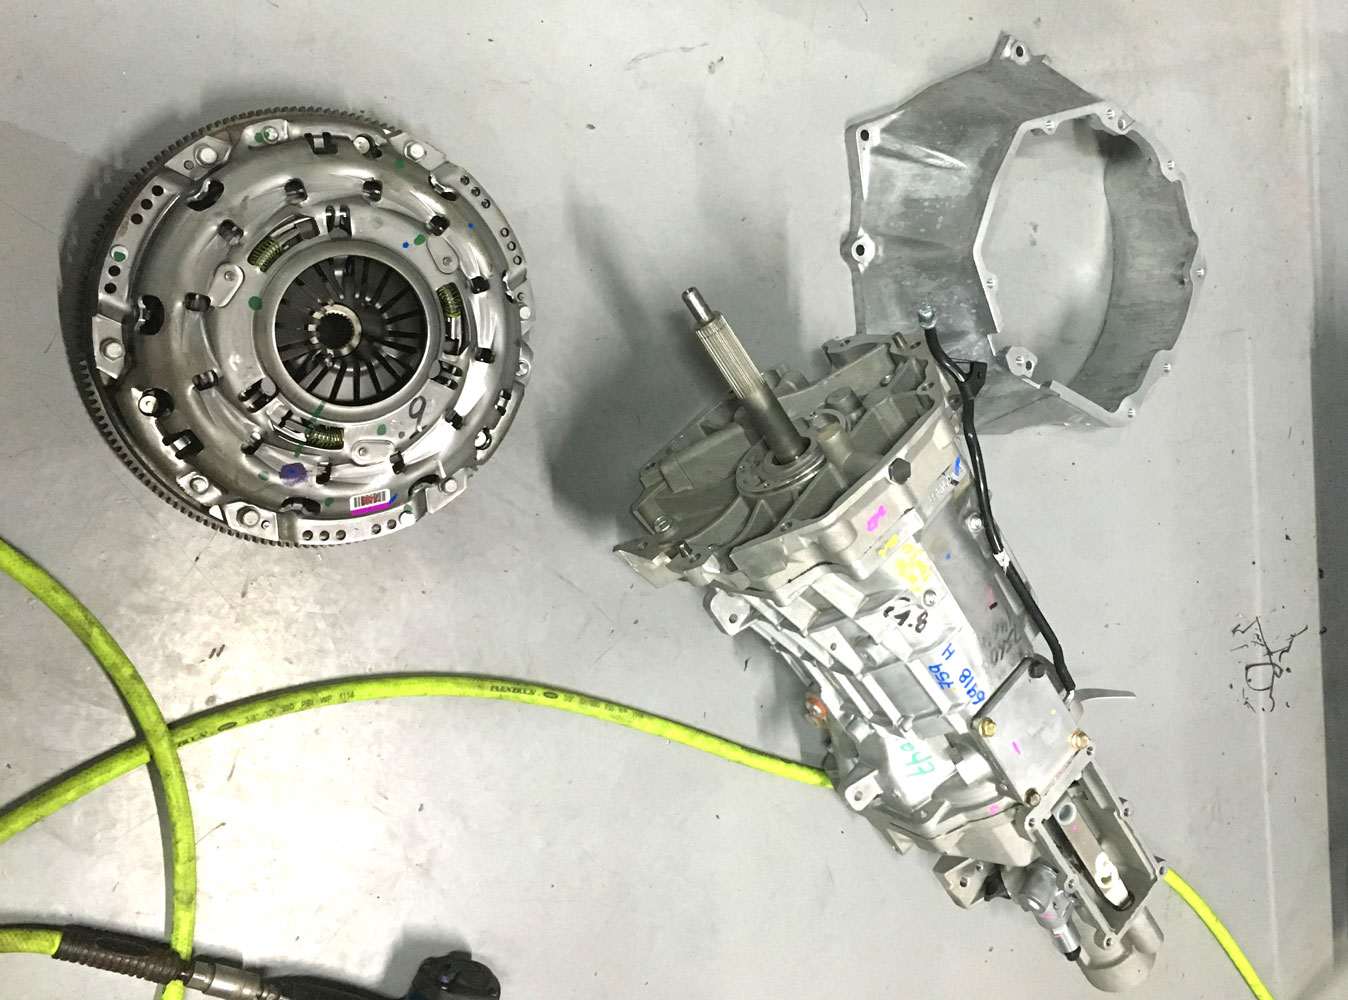 clutch and transmission assembly awaiting installation at topcats racing workshop